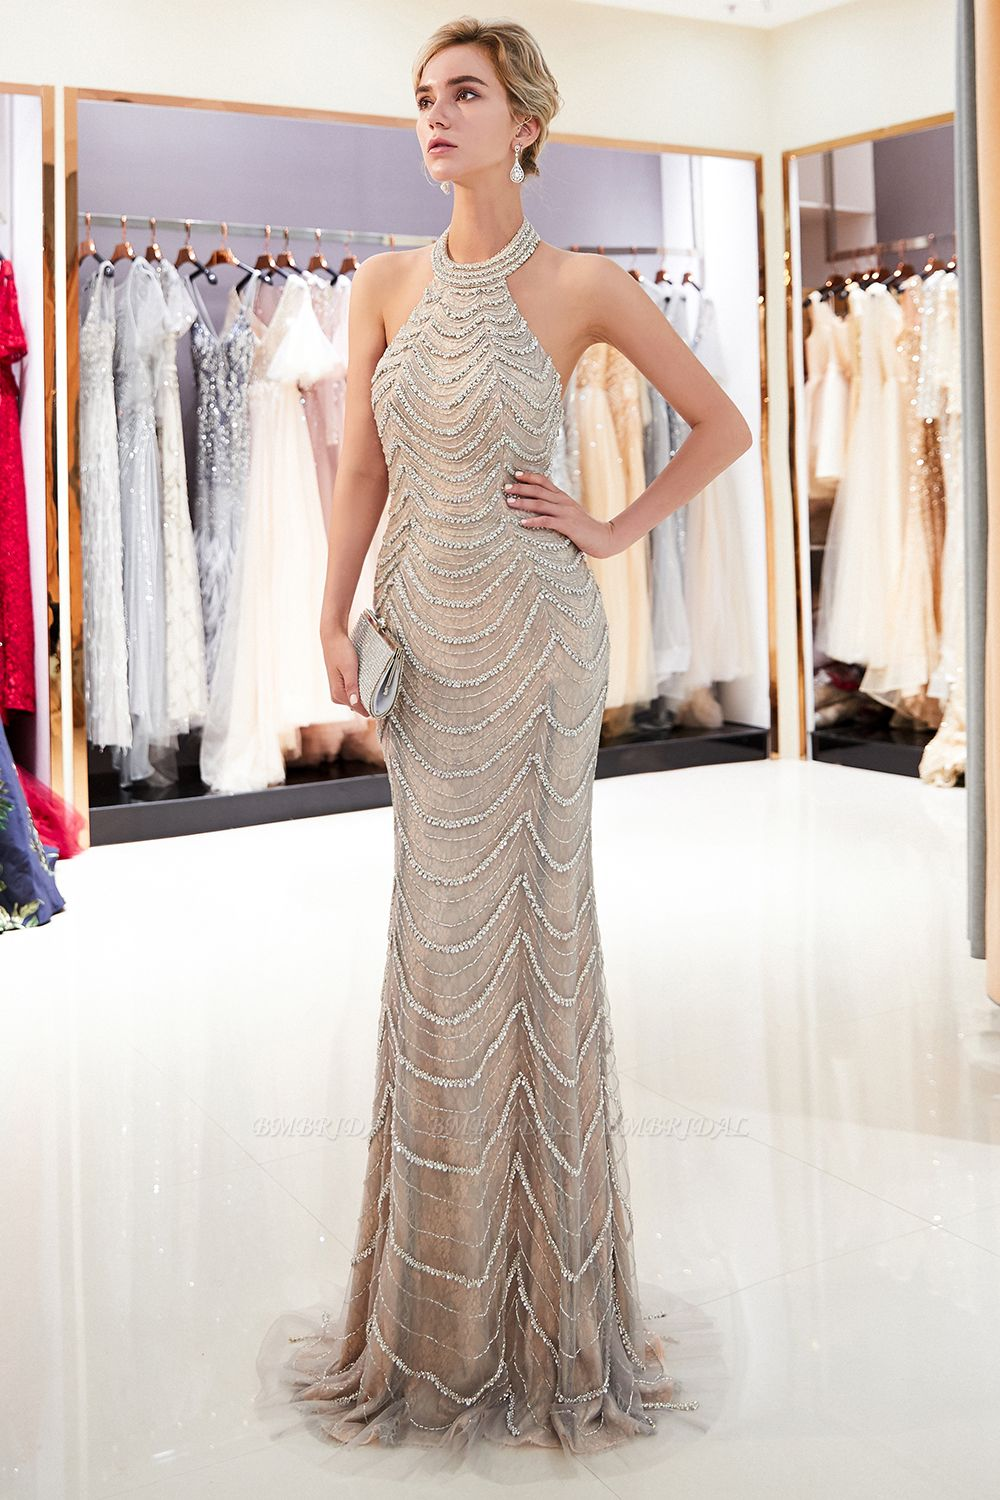 Chic Tulle Mermaid Halter Prom Dresses Sleeveless Sequined Evening Dresses On Sale